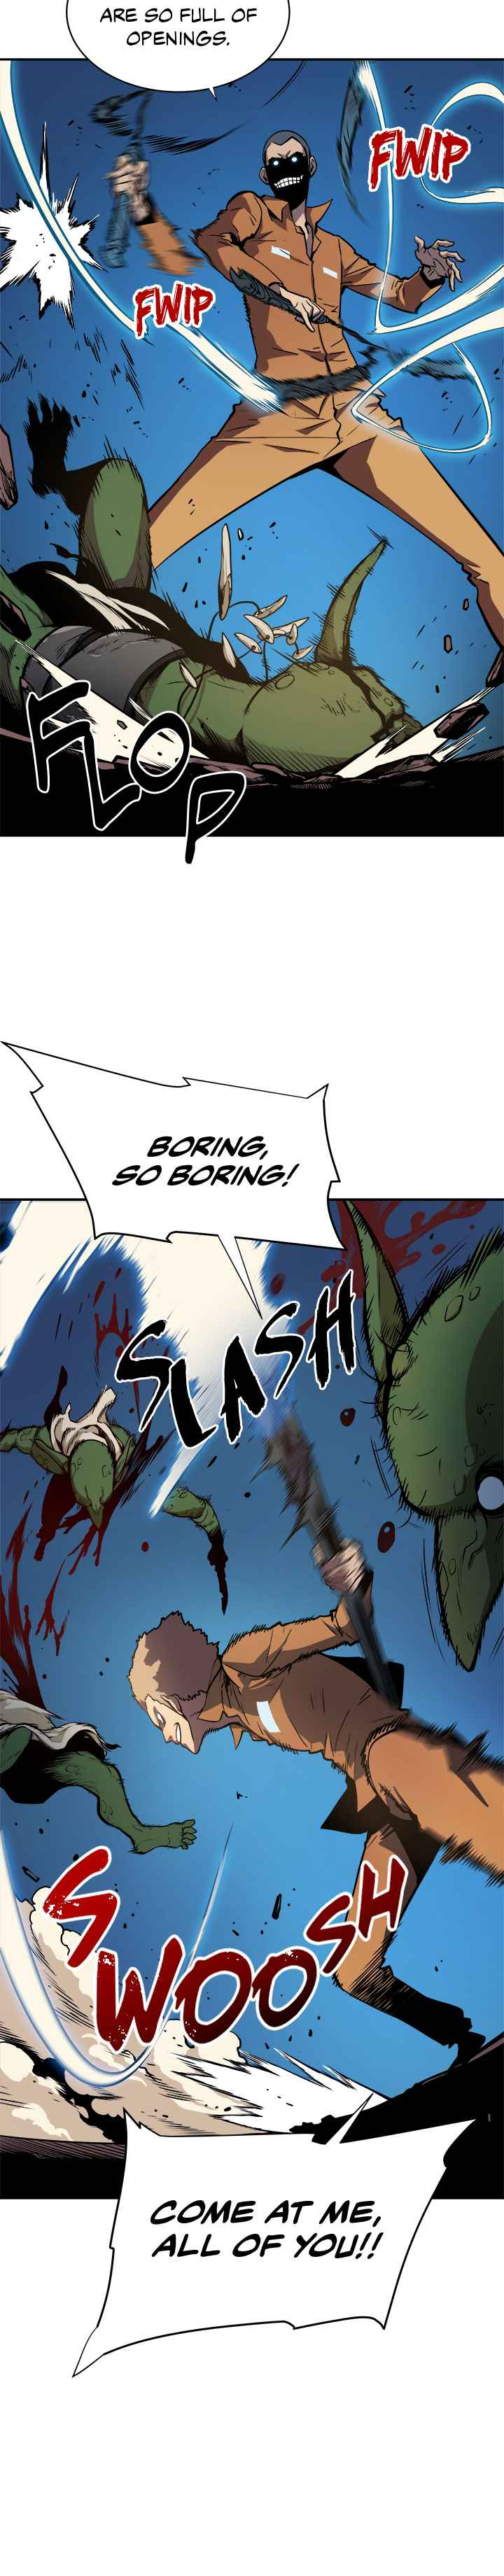 Solo Leveling Chapter 29 Page 7